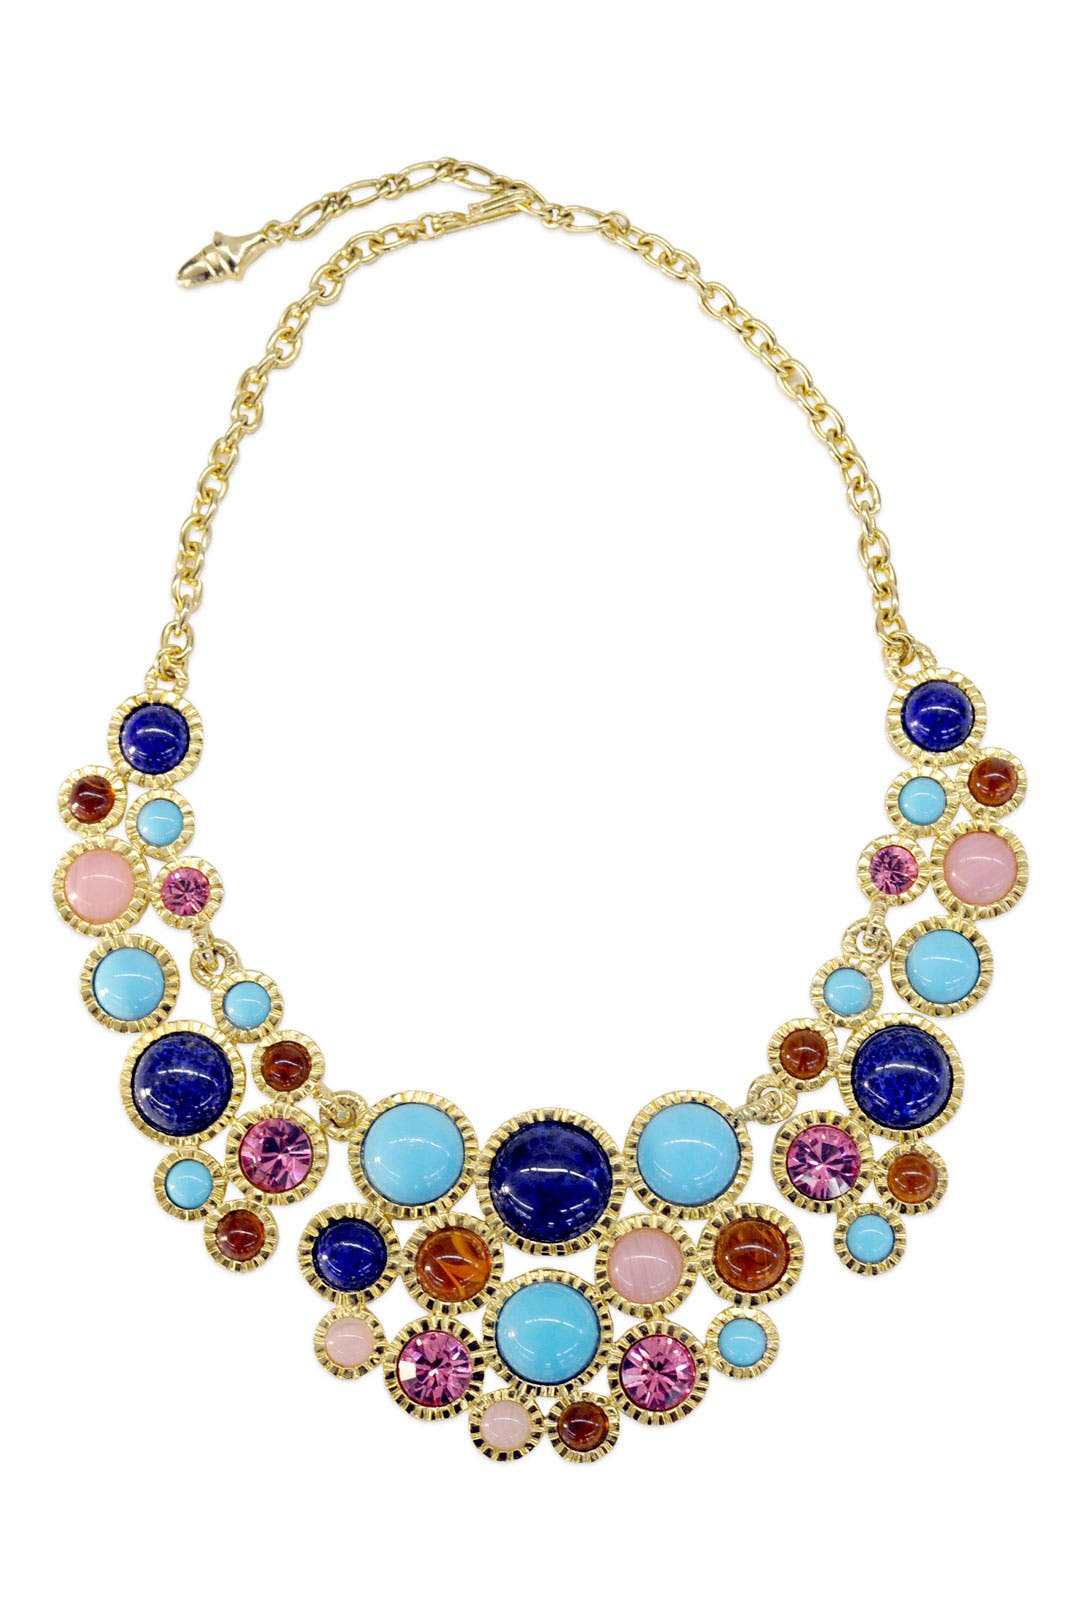 Renaissance Statement Necklace by Kenneth Jay Lane